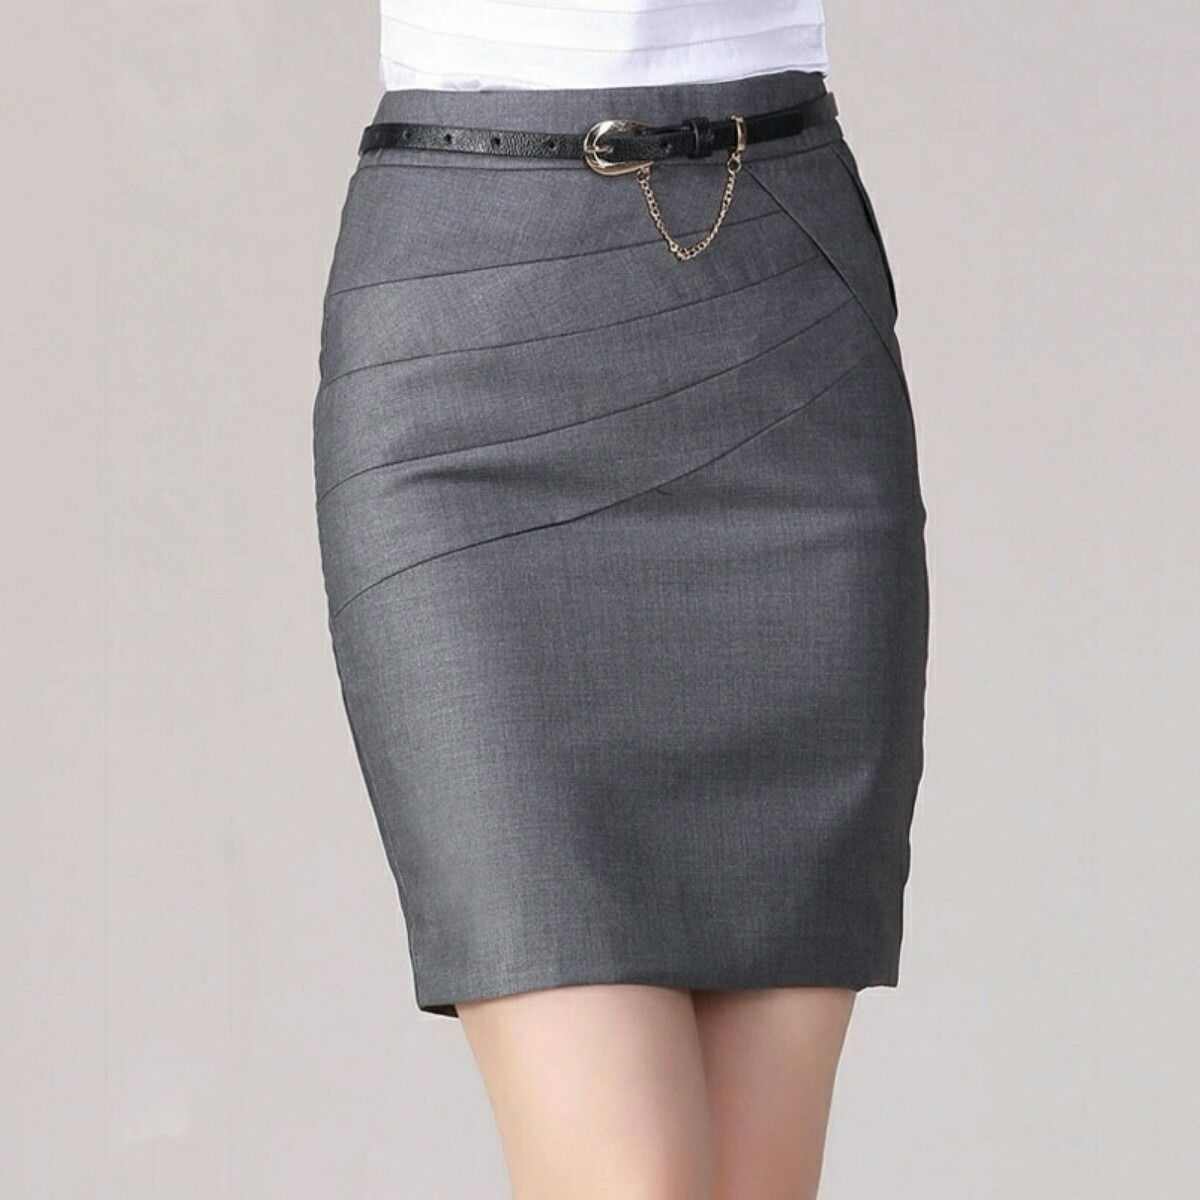 Ropademoda Me Womens Skirt Pencil Skirt Casual Womens Pencil Skirts